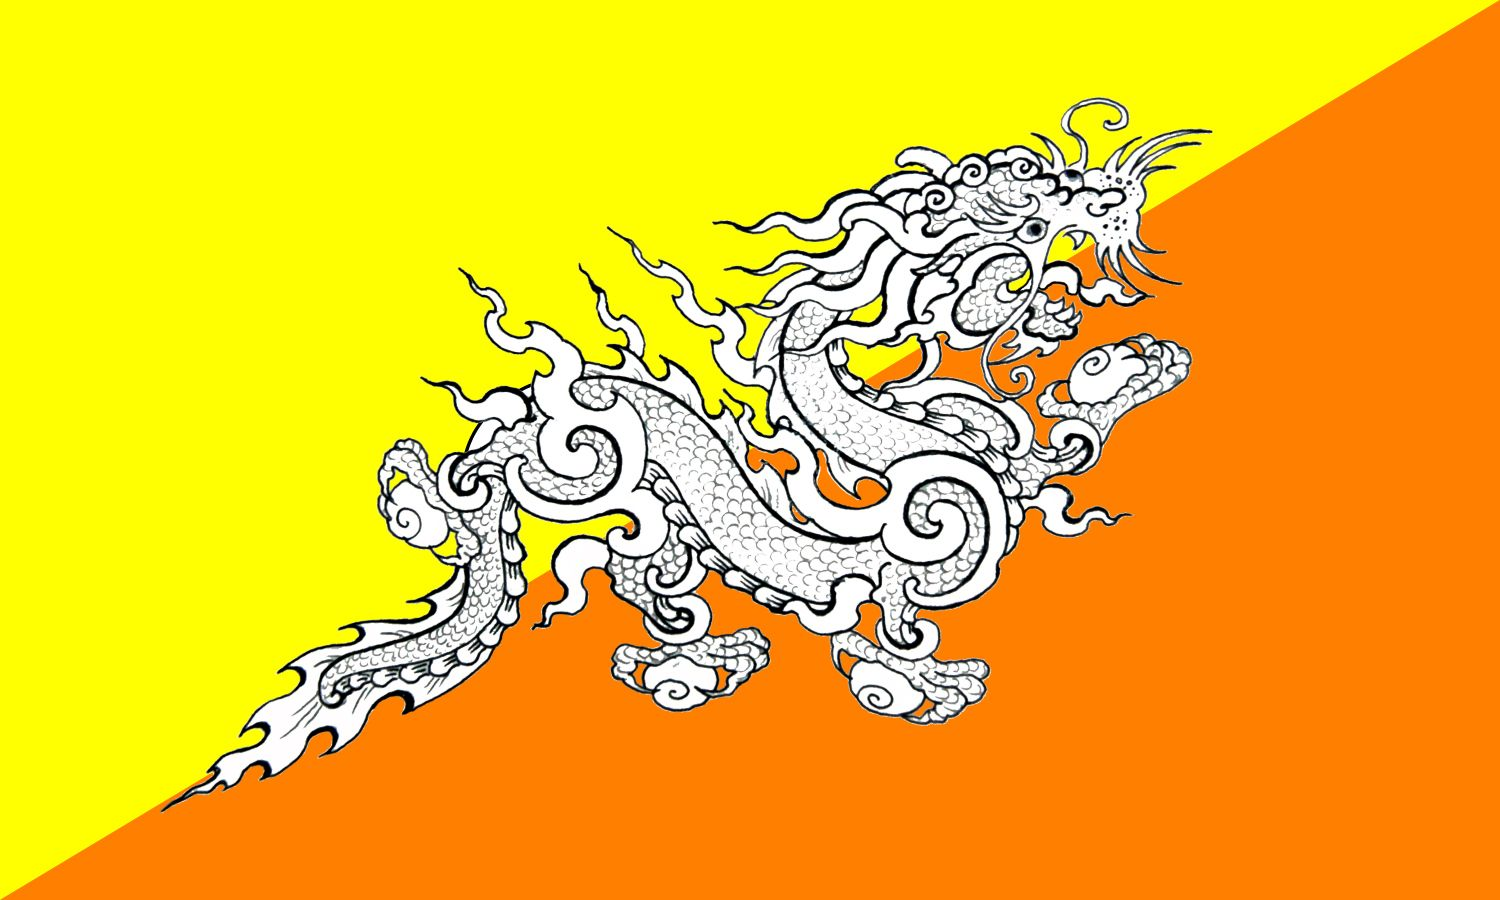 Bhutan Flag Google Search Bhutan Flag National Symbols Flag Design